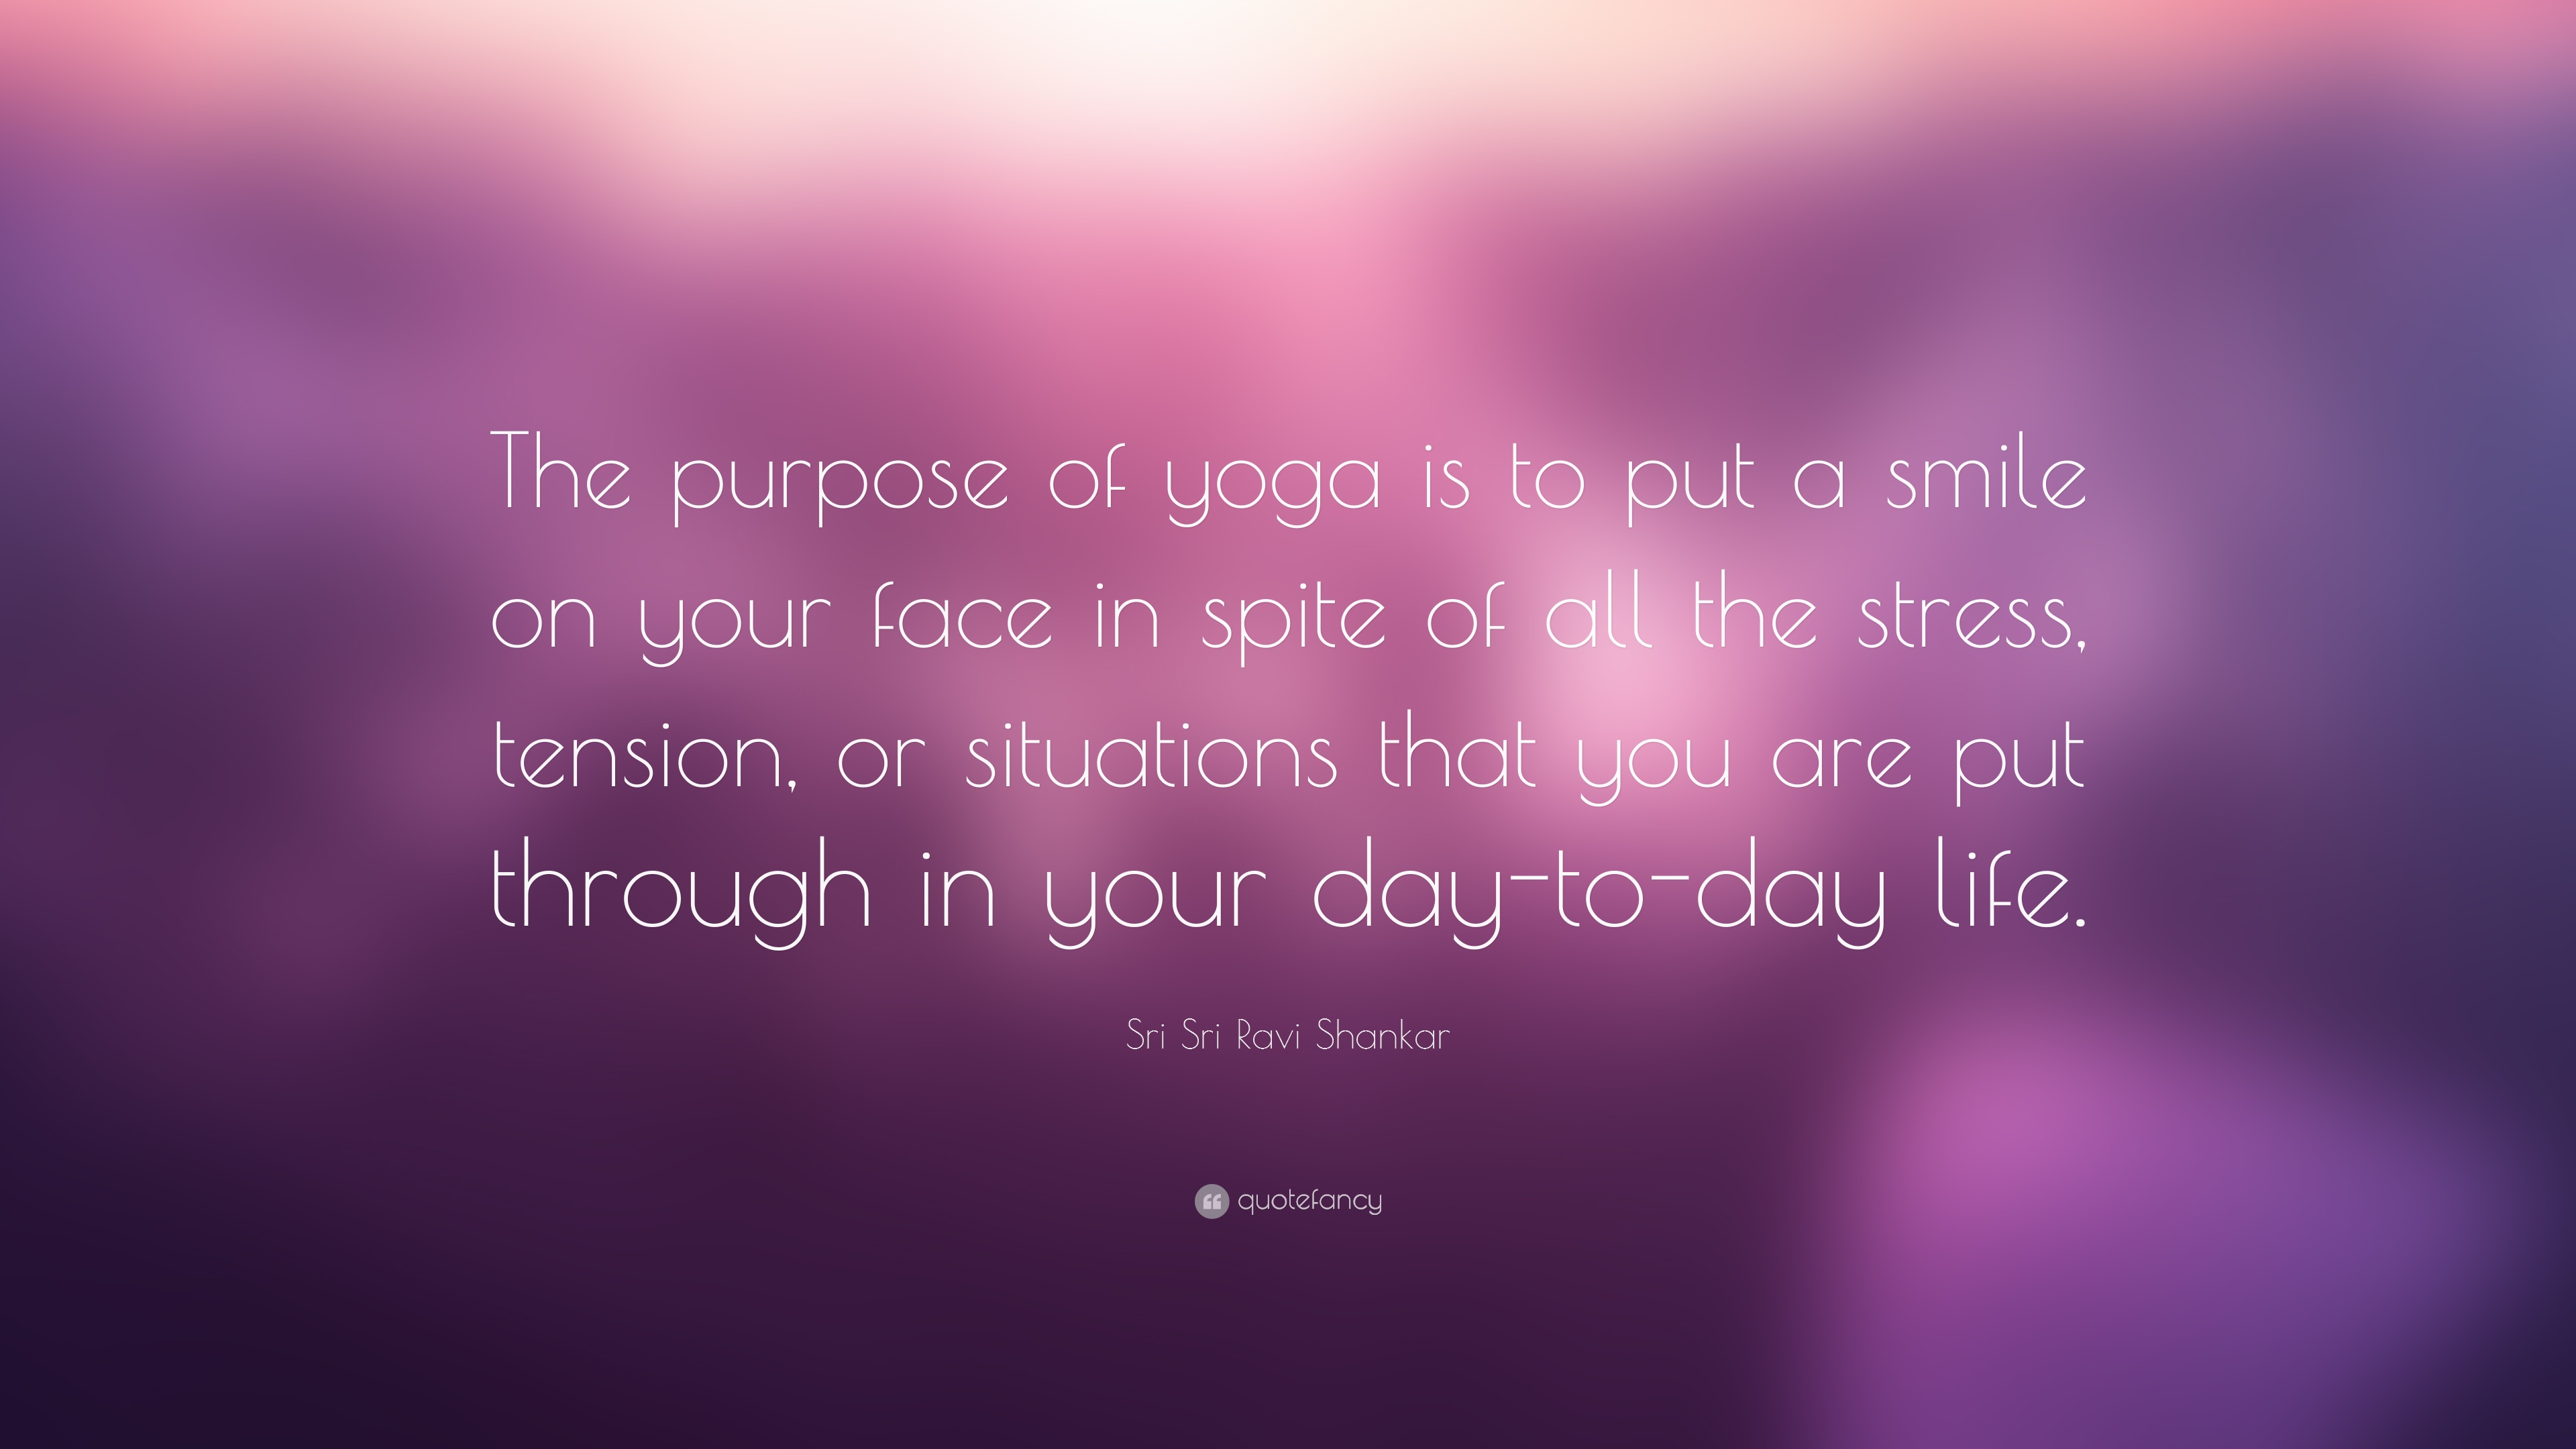 Sri Sri Ravi Shankar Quote The Purpose Of Yoga Is To Put A Smile